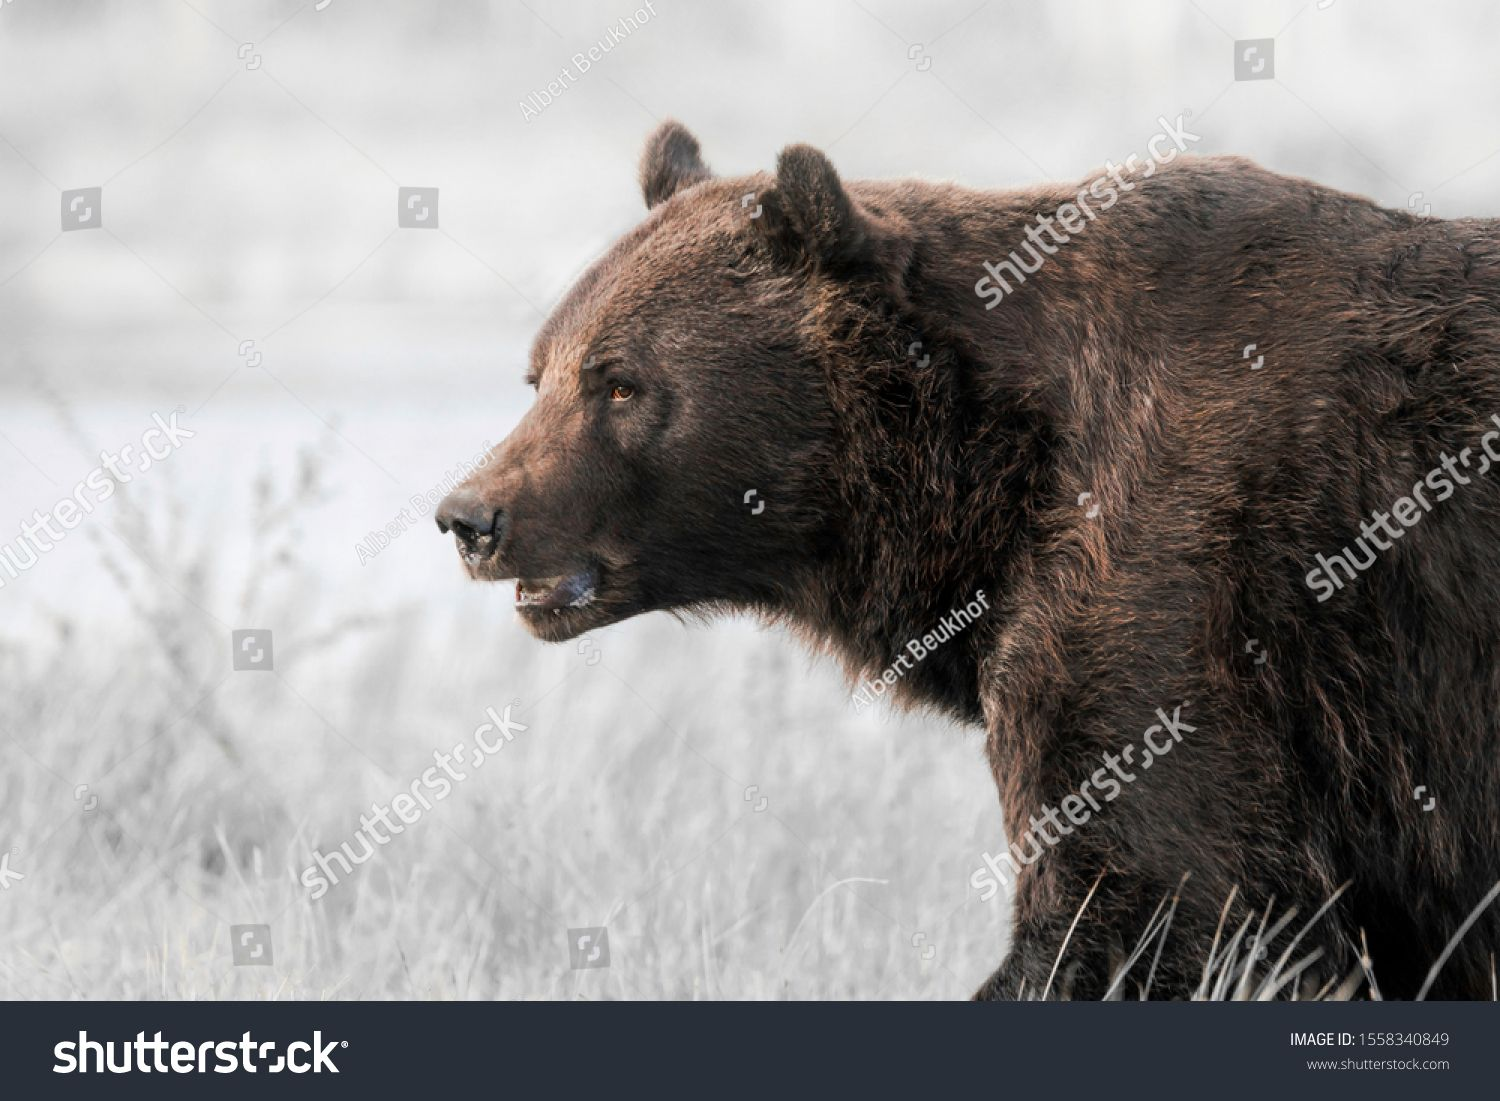 European Brown Bear Ursus Arctos Arctos In Front Of A Lake With Forest In The Background Wild Brown Bear Kuhmo Finland Scandinavia In 2020 Ursus Brown Bear Bear